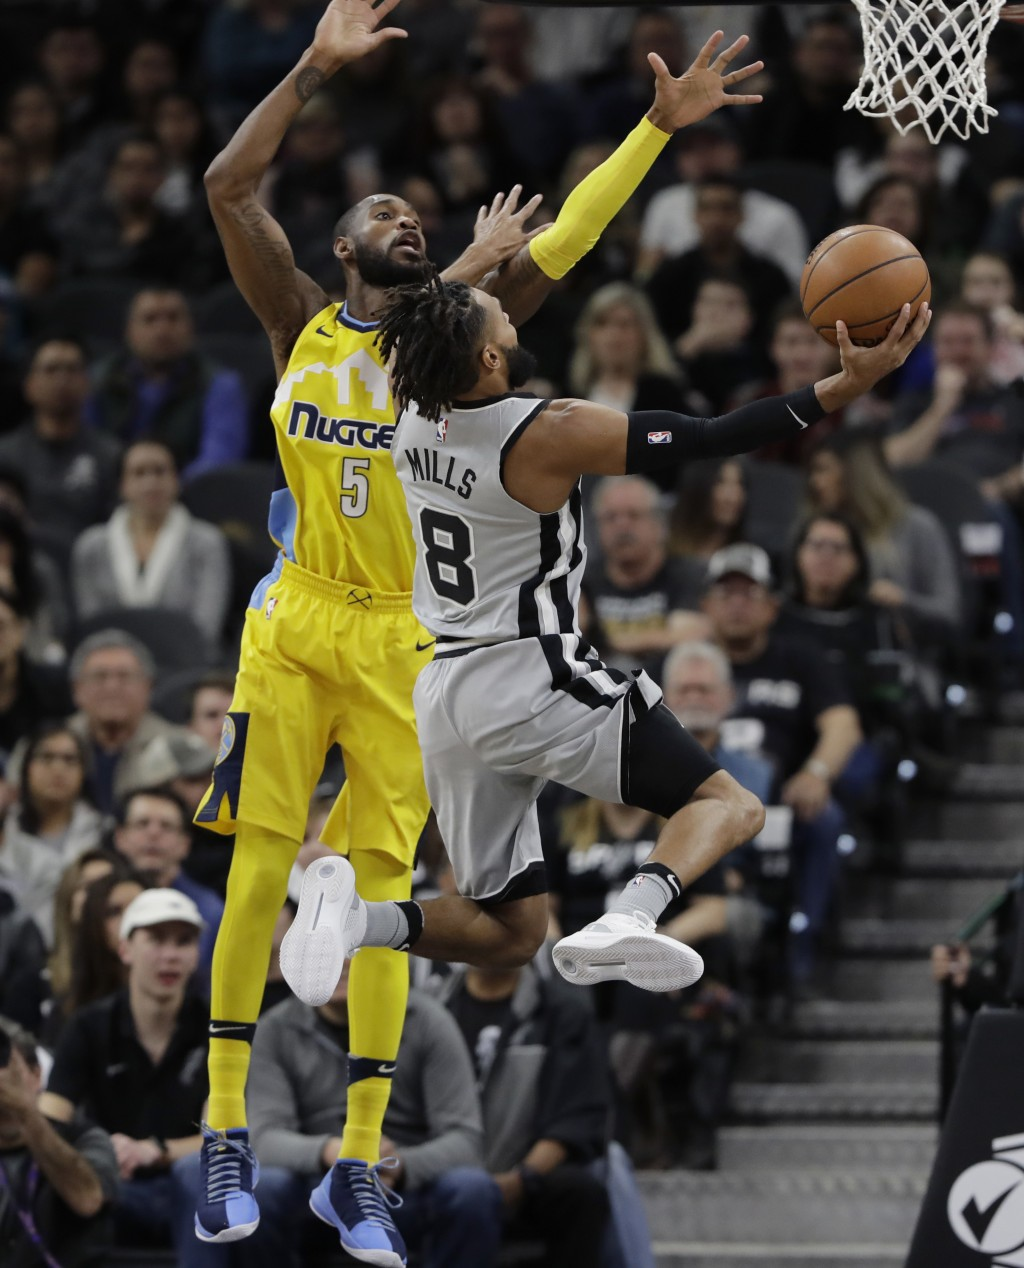 San Antonio Spurs guard Patty Mills (8) drives past Denver Nuggets guard Will Barton (5) during the first half of an NBA basketball game Saturday, Jan